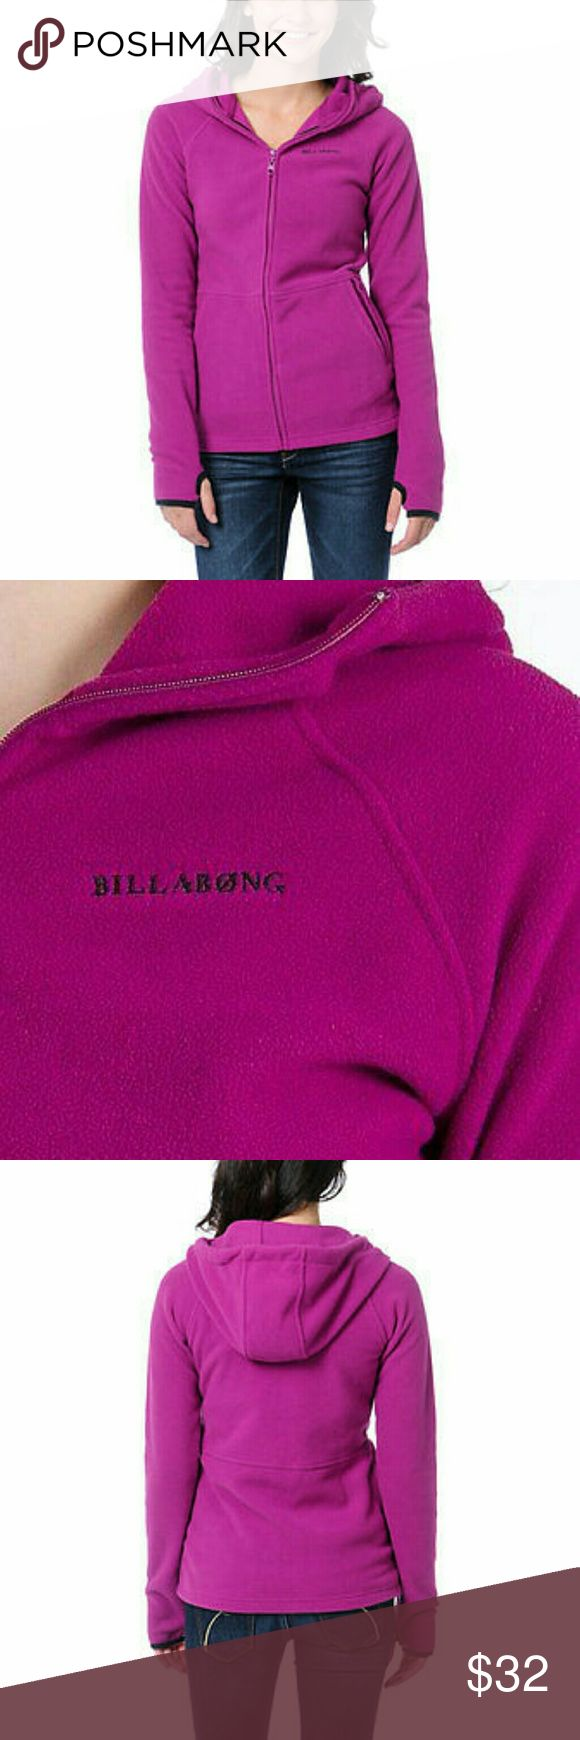 NWT Billabong zip up hoodie sweatshirt sweater Authentic Billabong Stef Hoodie  Size: Medium  Brand new with tags   Super toasty Billabong Girls fleece.  All berry pink colorway.  Full zip hooded jacket.  High structured collar to protect from chill.  Double stitched bonded seams.  Front hand pockets with phone pocket.  Thumb holes on cuffs.  Billabong logos at chest, hood, and hem.  100% polyester. Billabong Tops Sweatshirts & Hoodies